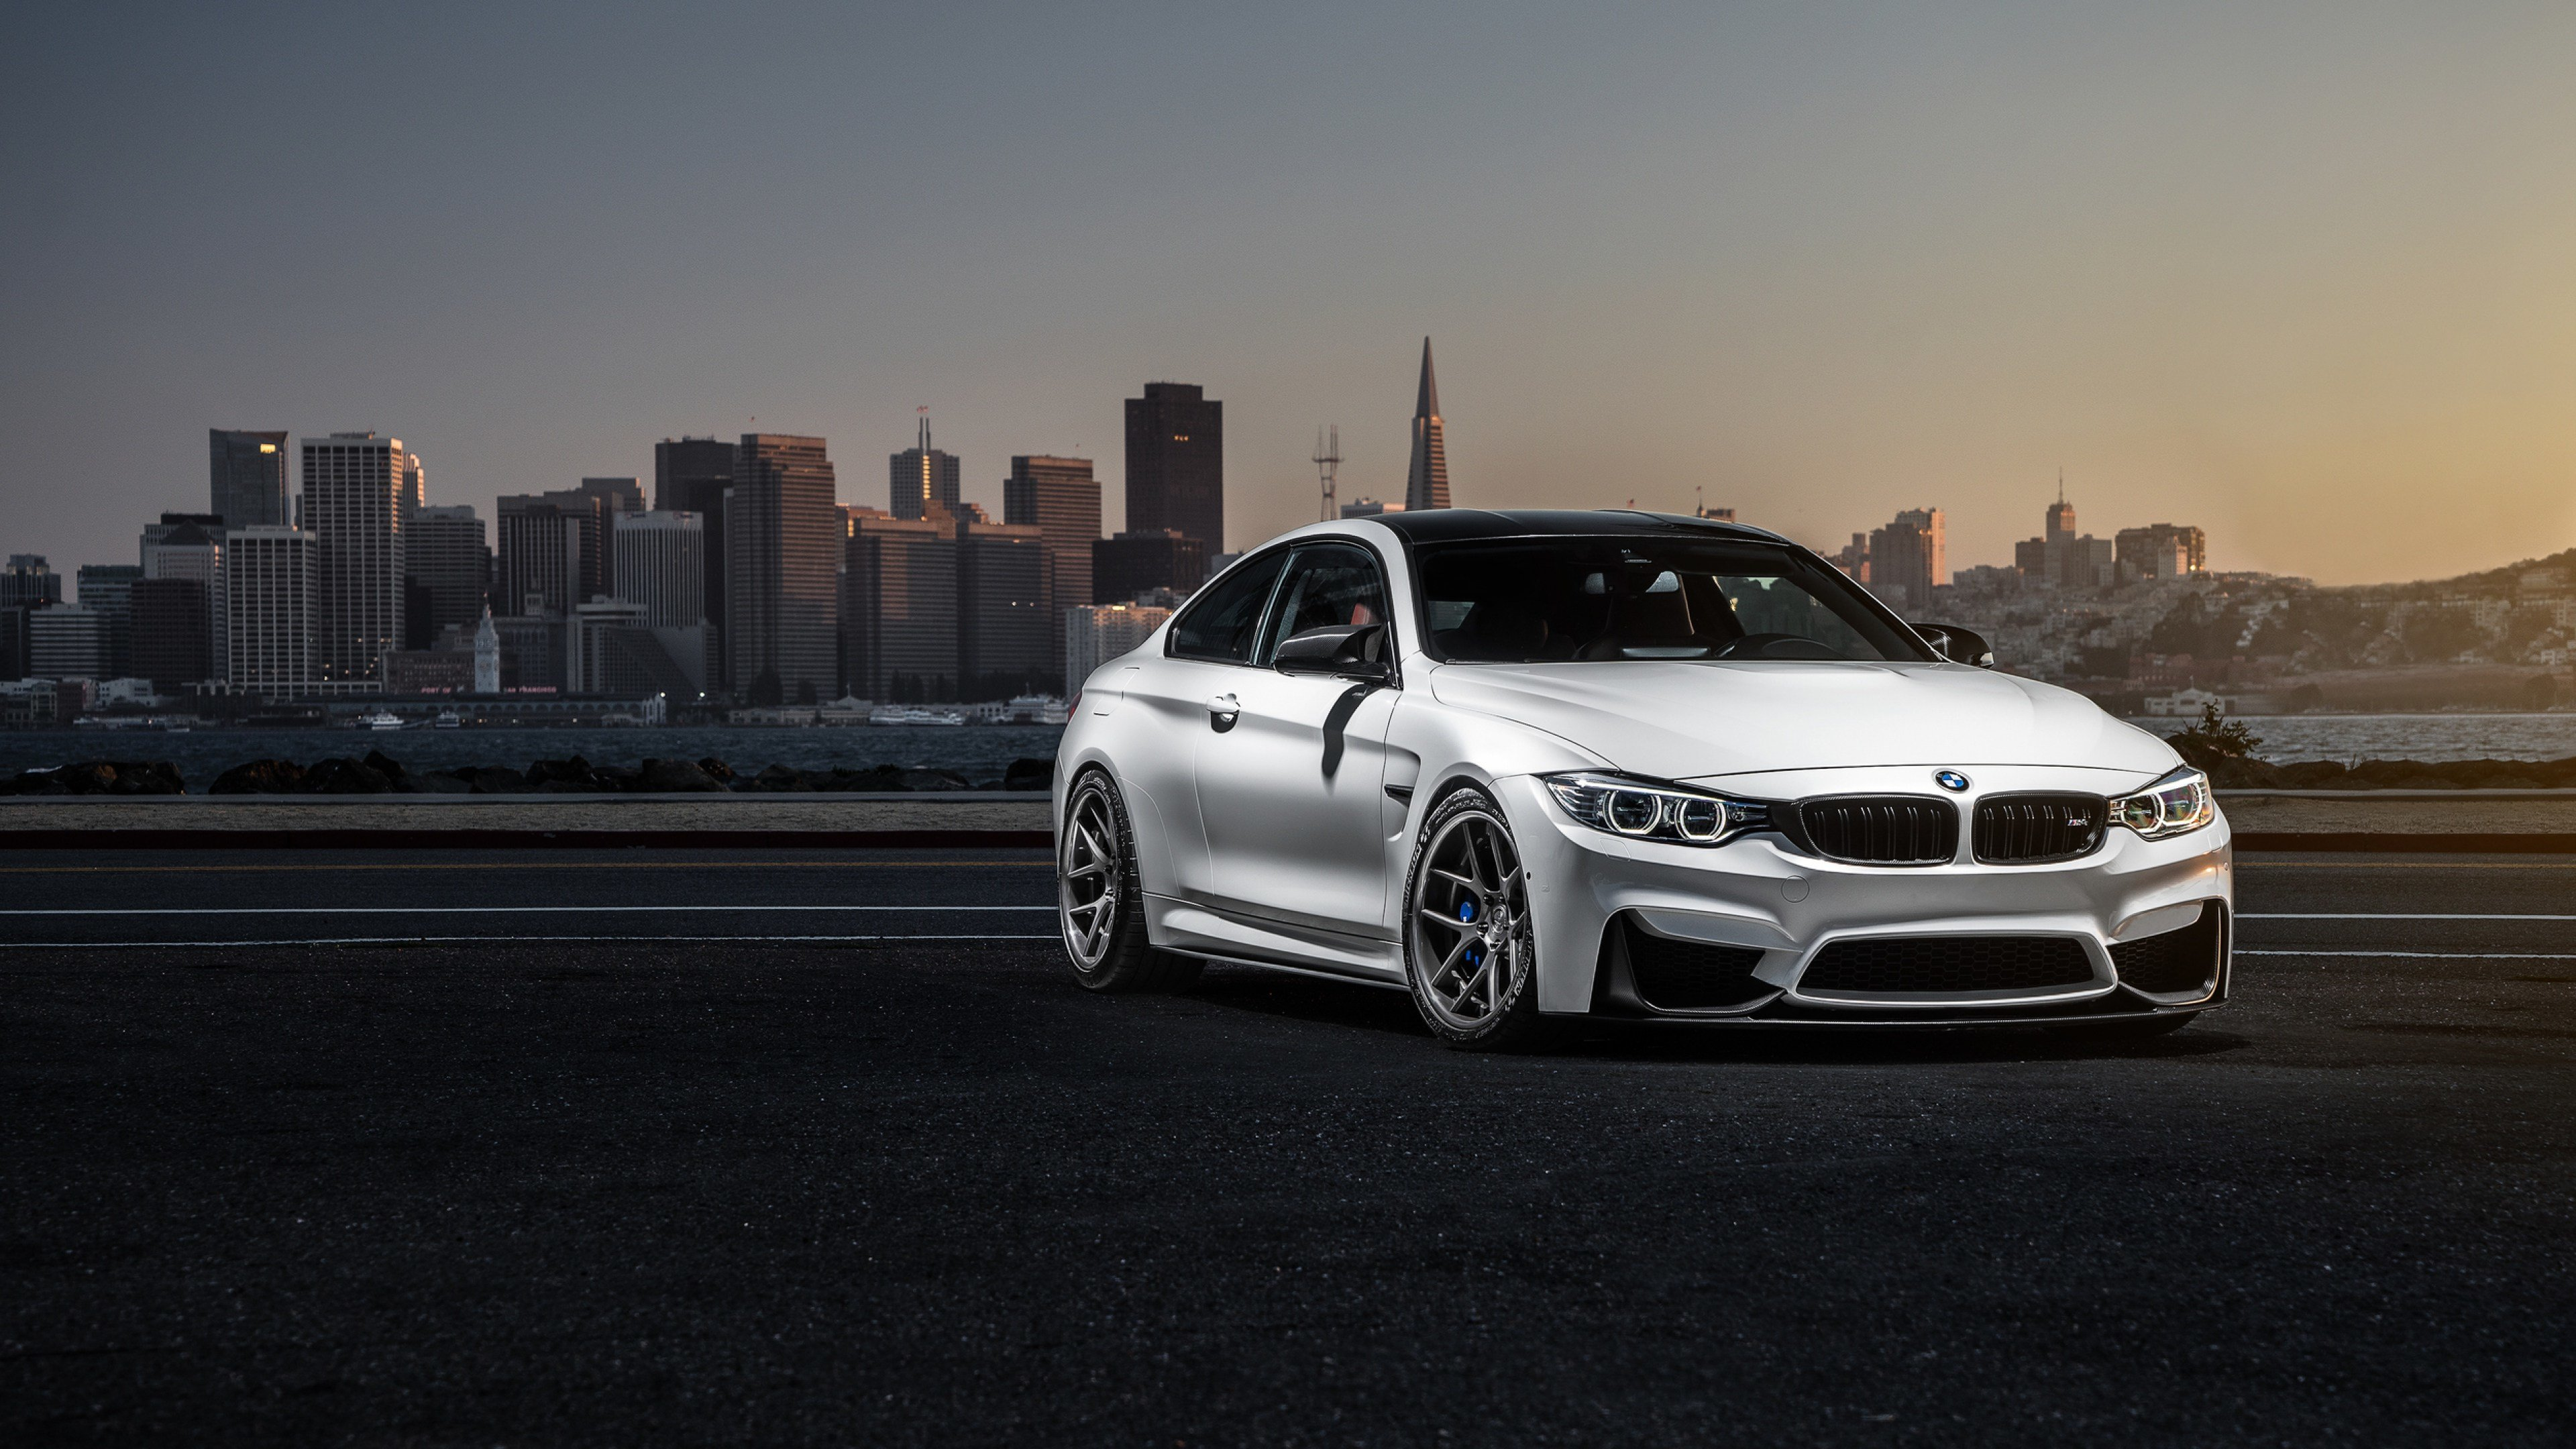 Latest Bmw M4 Hd Cars 4K Wallpapers Images Backgrounds Free Download